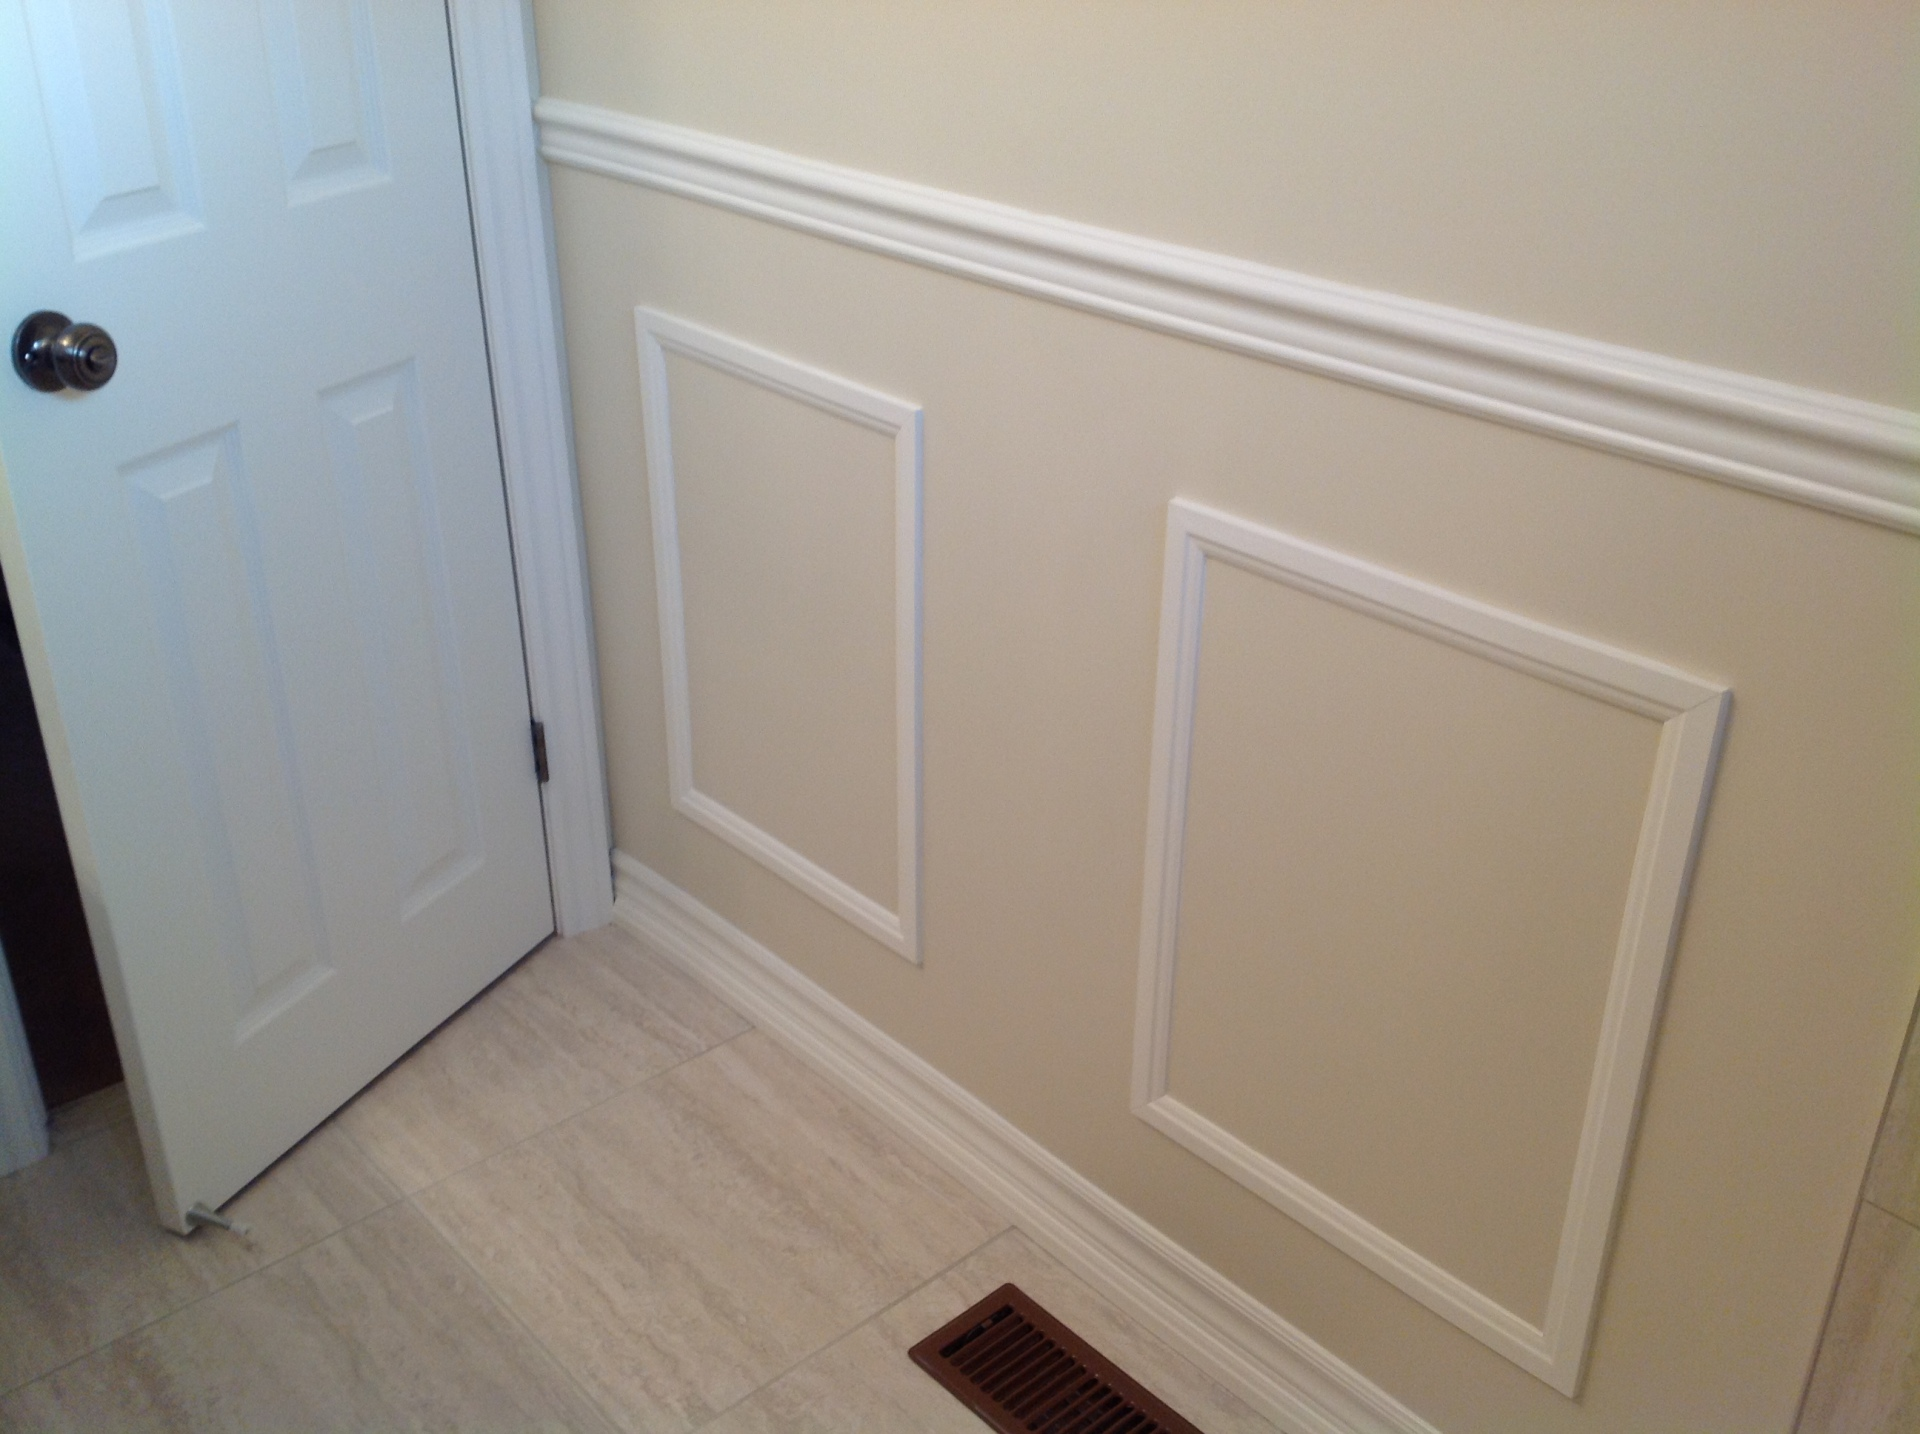 Square wainscoting